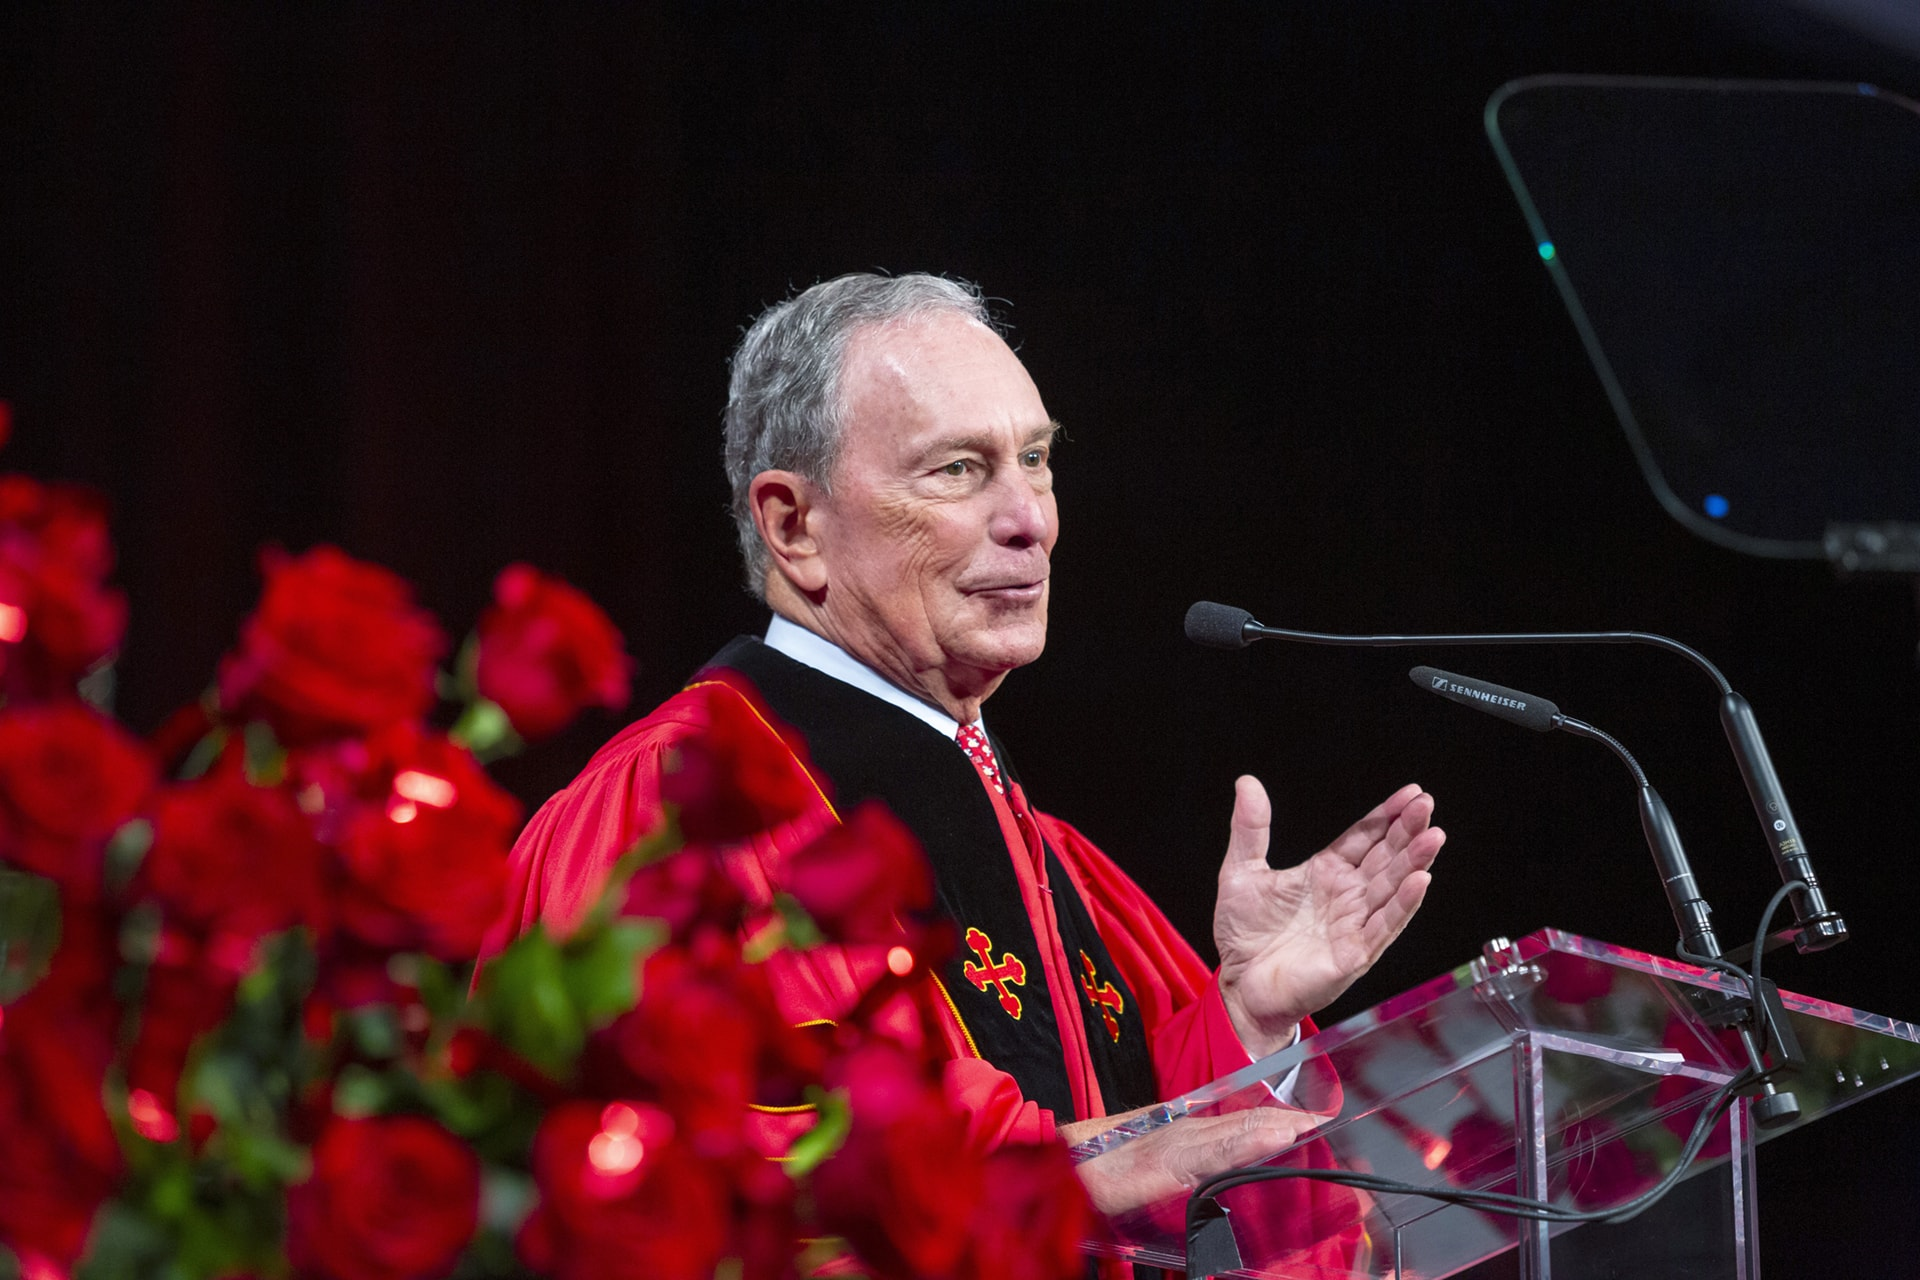 Bloomberg at 2019 Spring Commencement